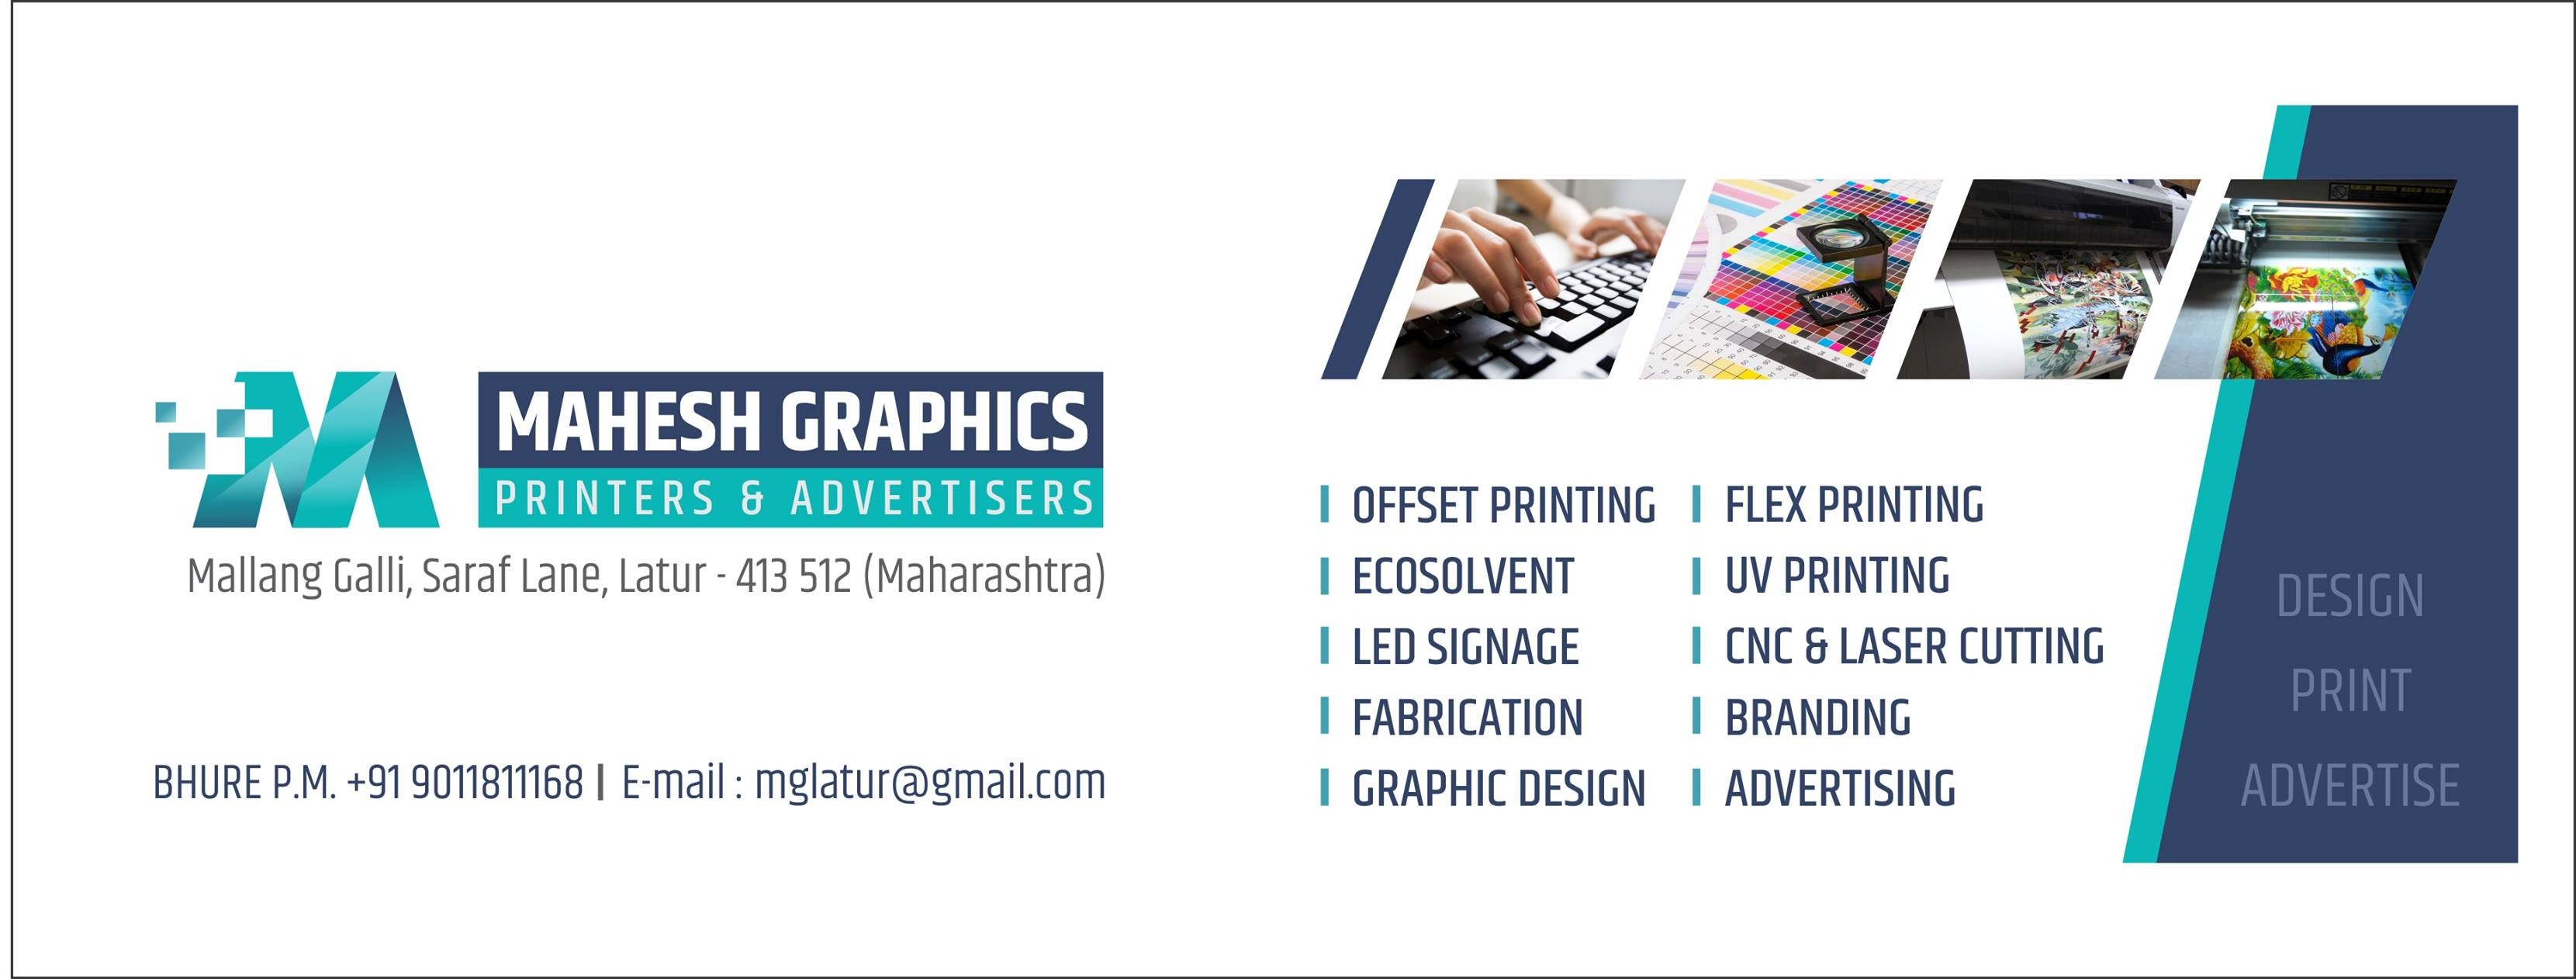 Mahesh Graphics Printers & Advertisers